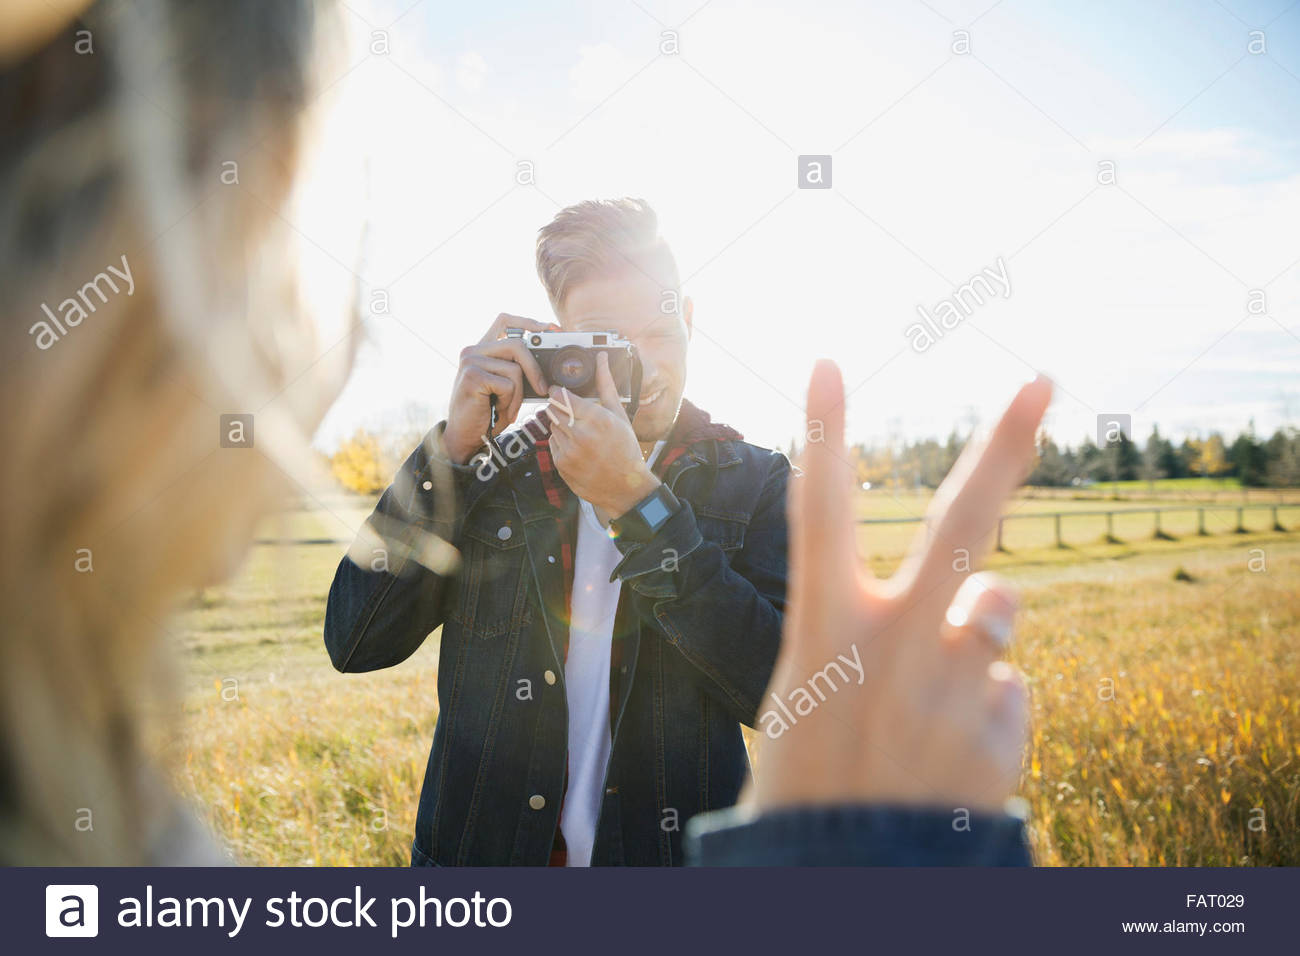 Young man photographing amie gesturing peace sign Photo Stock